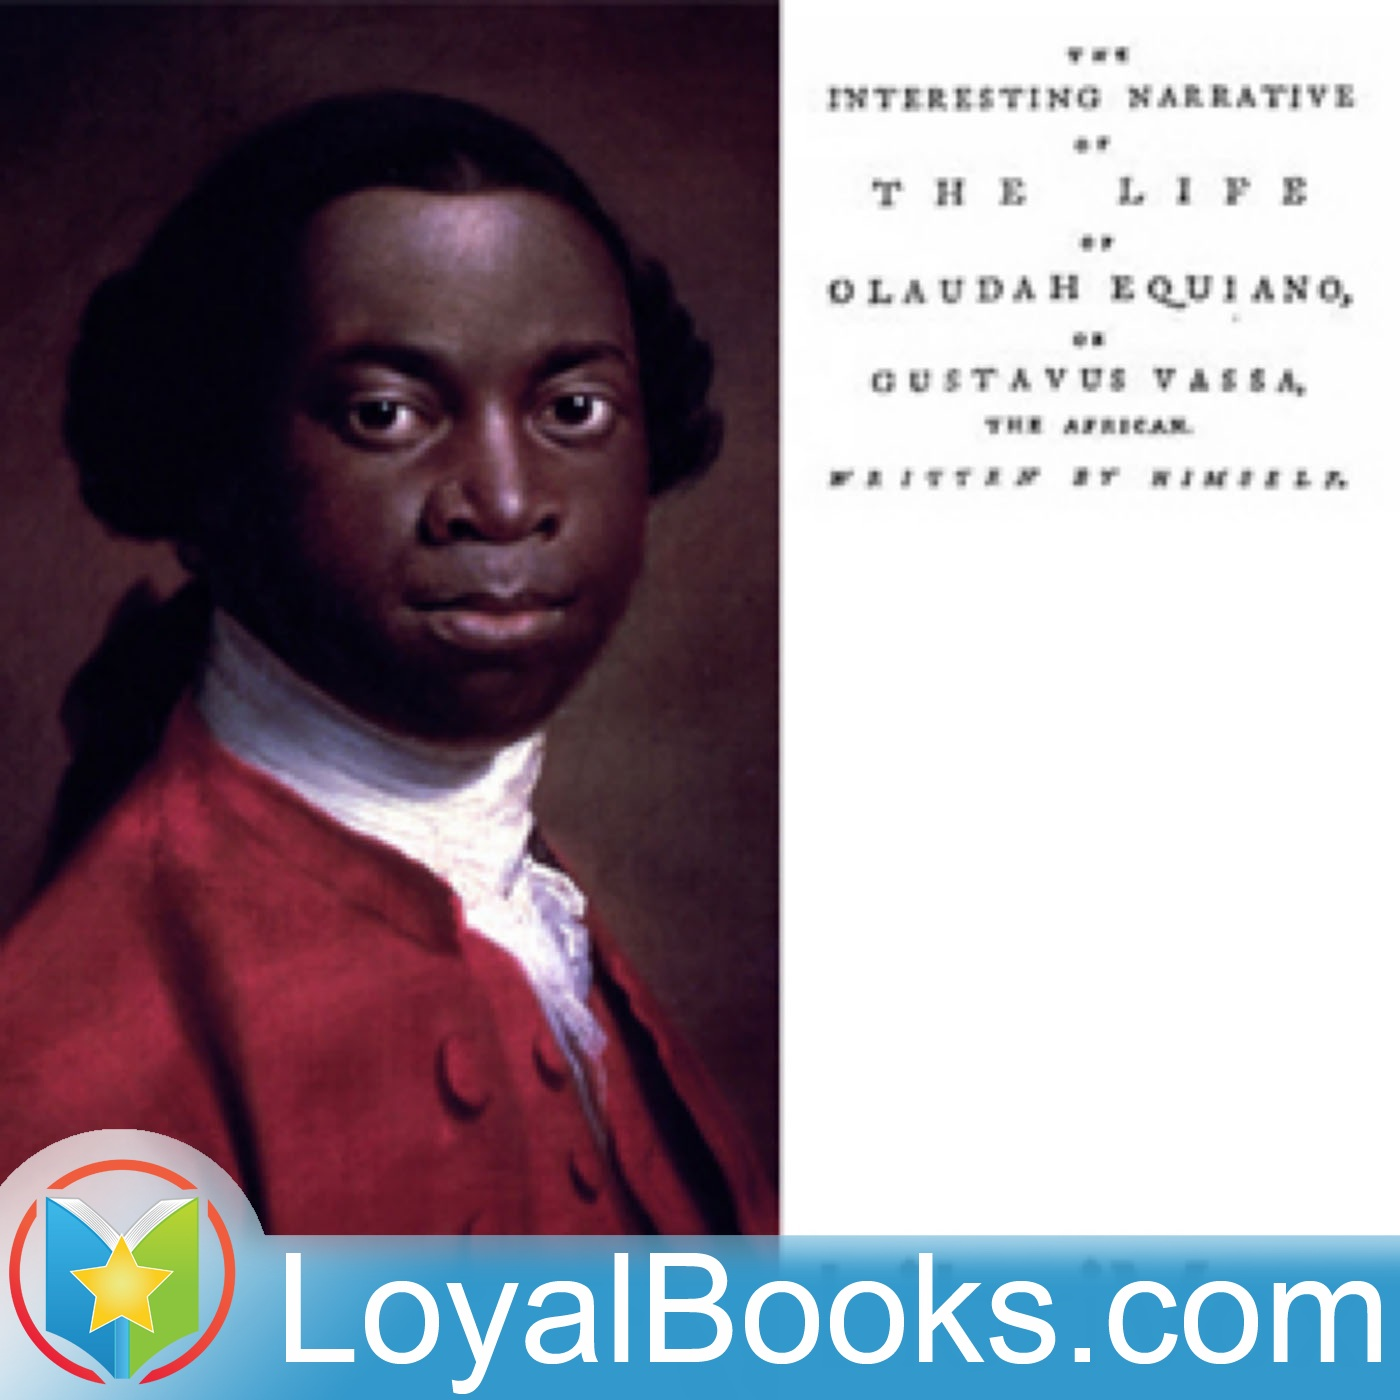 <![CDATA[The Interesting Narrative of the Life of Olaudah Equiano, Or Gustavus Vassa, The African by Olaudah Equiano]]>